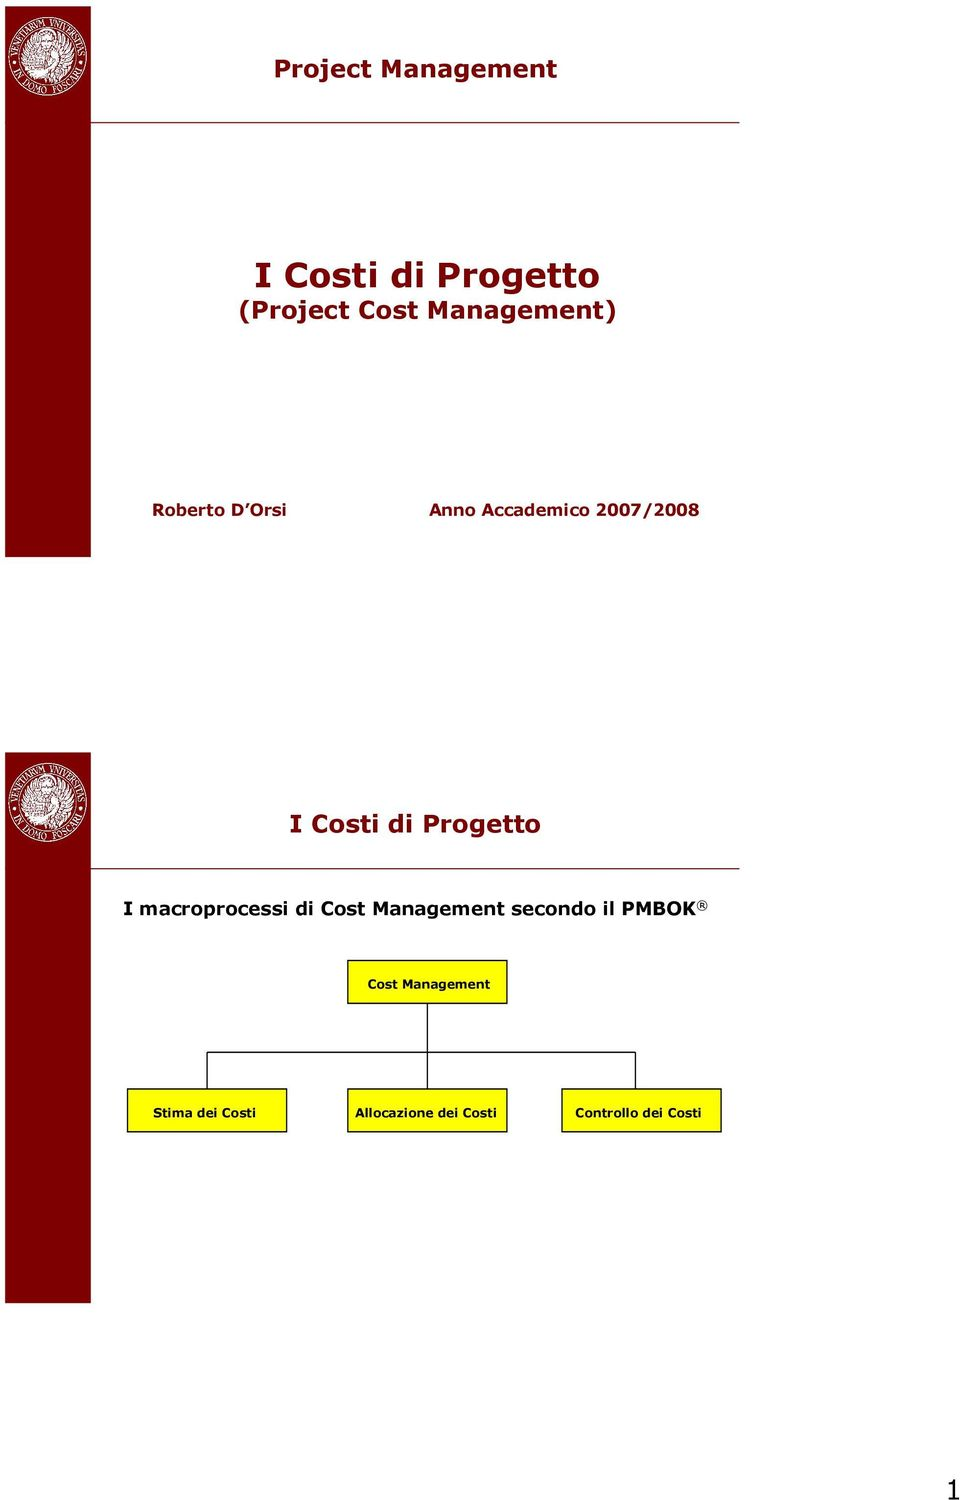 Cost Management secondo il PMBOK Cost Management